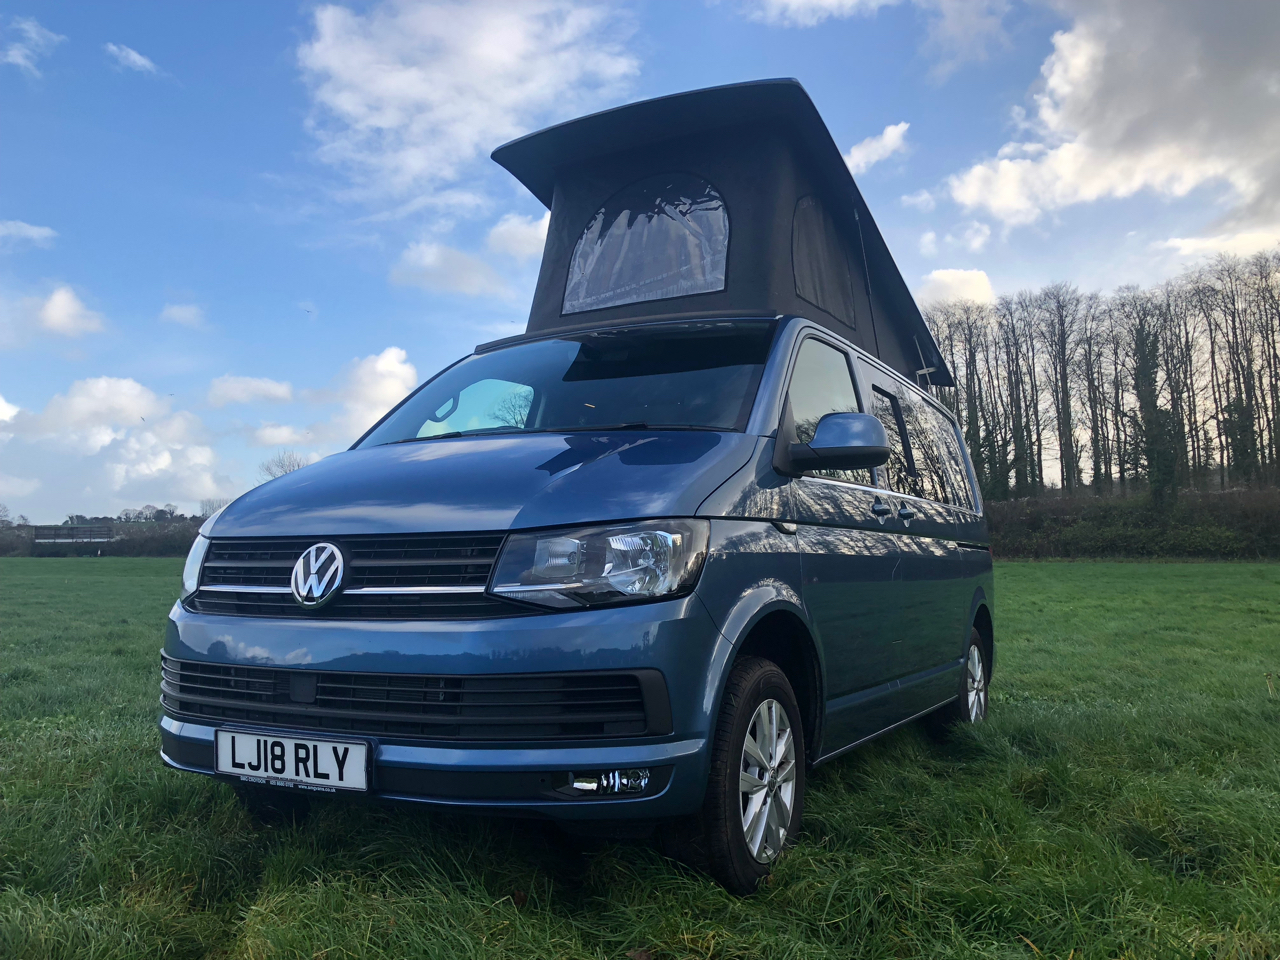 ce847fe1ce 18 Plate VW Transporter T6 HIGHLINE 150PS 4 berth Campervan (Tailgate